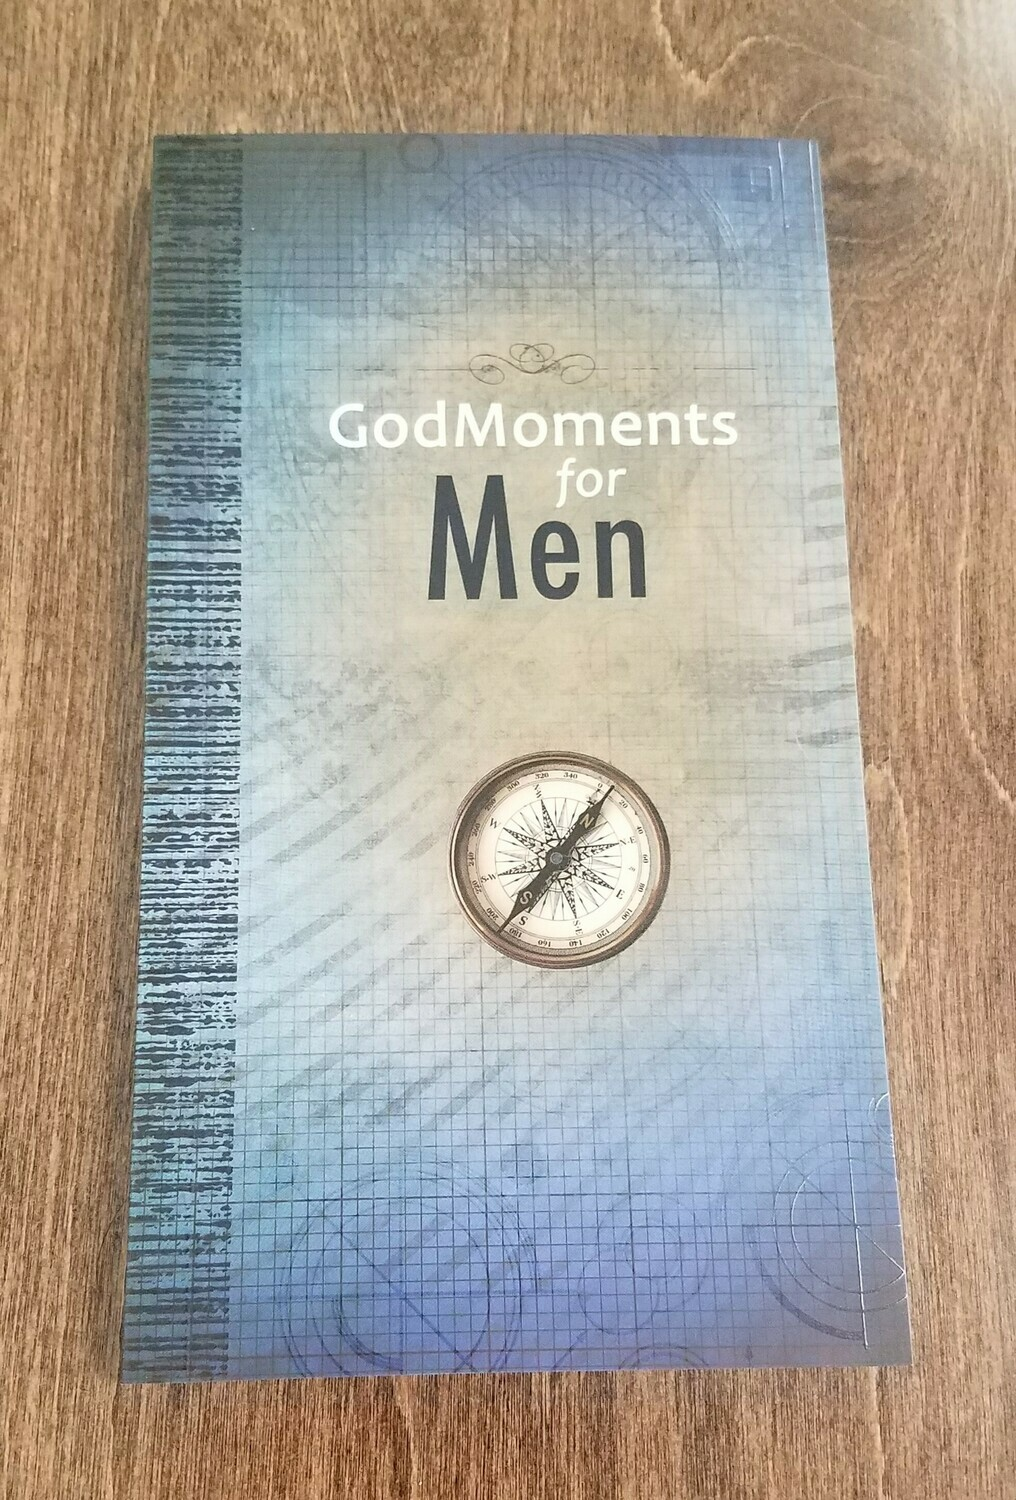 God Moments for Men by Andrew Holmes